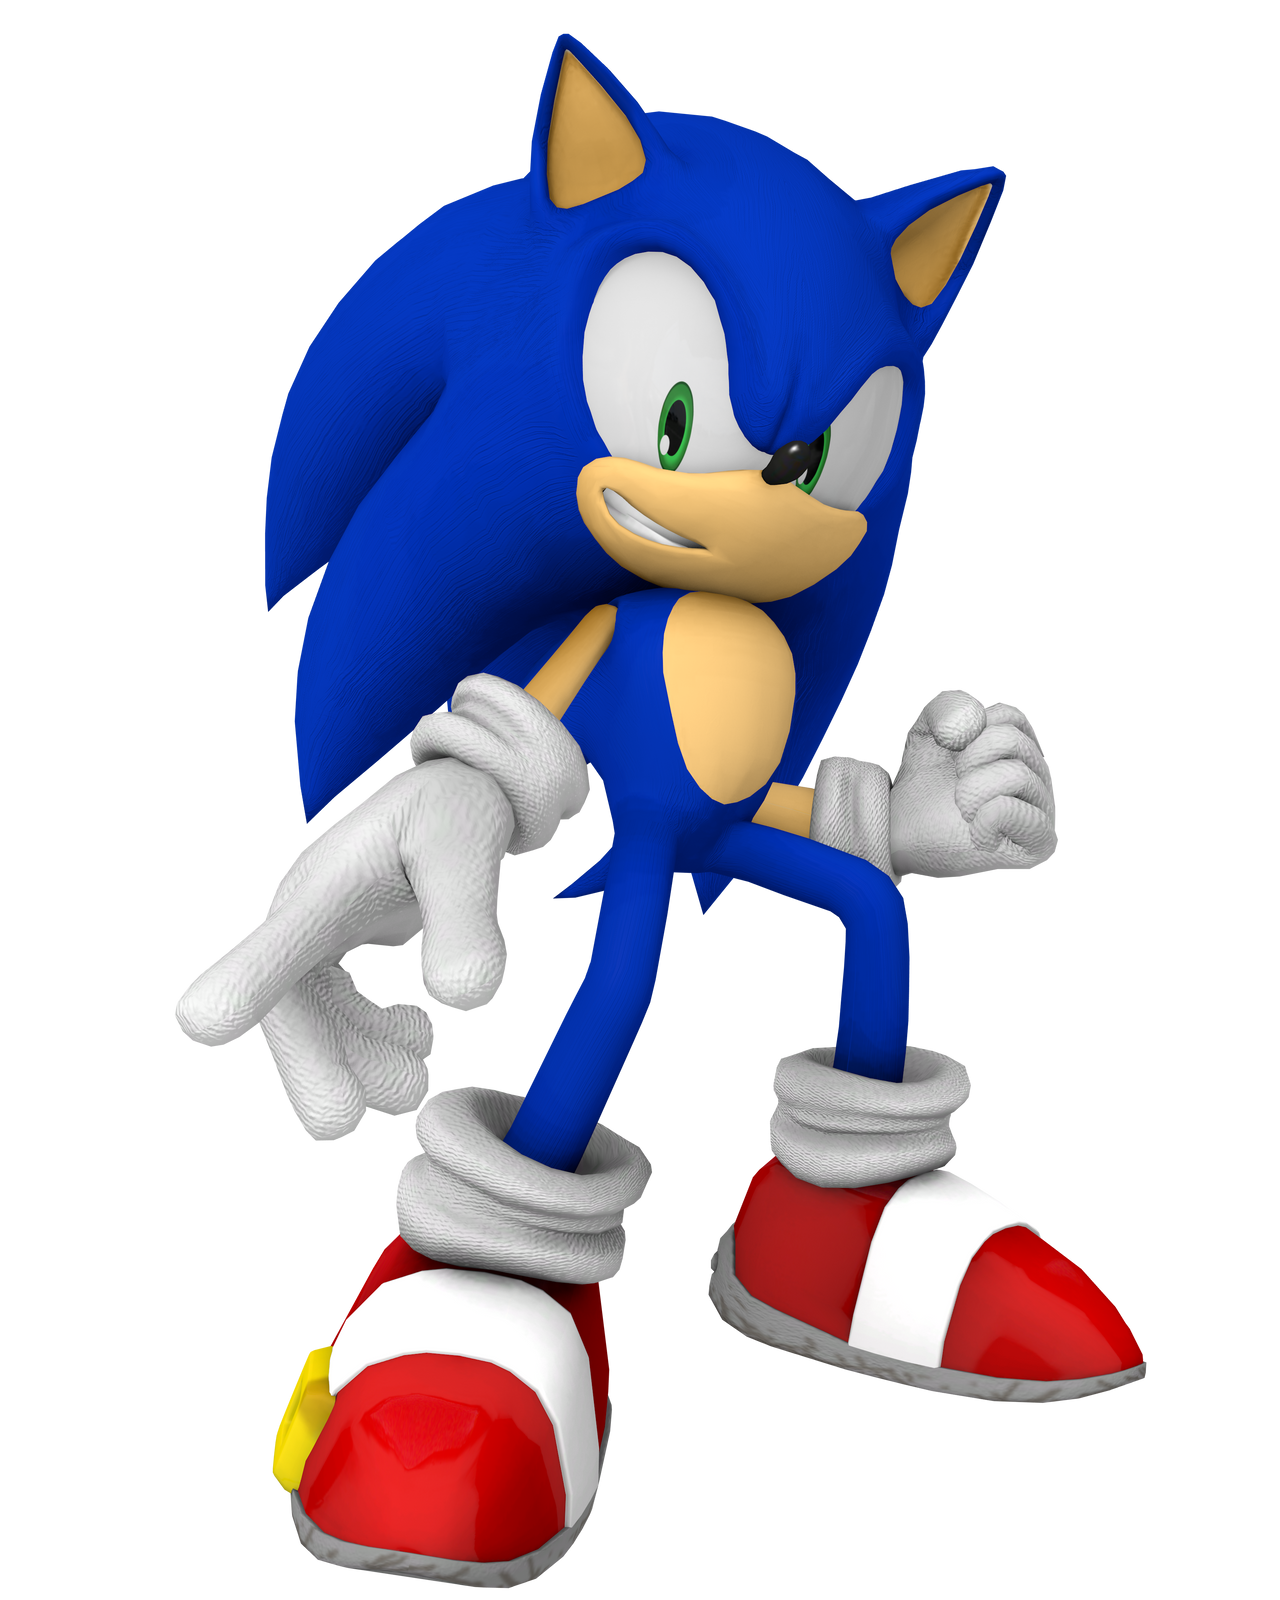 Modern Sonic Unleashed Day Render Recreation By Bandicootbrawl96 On Deviantart